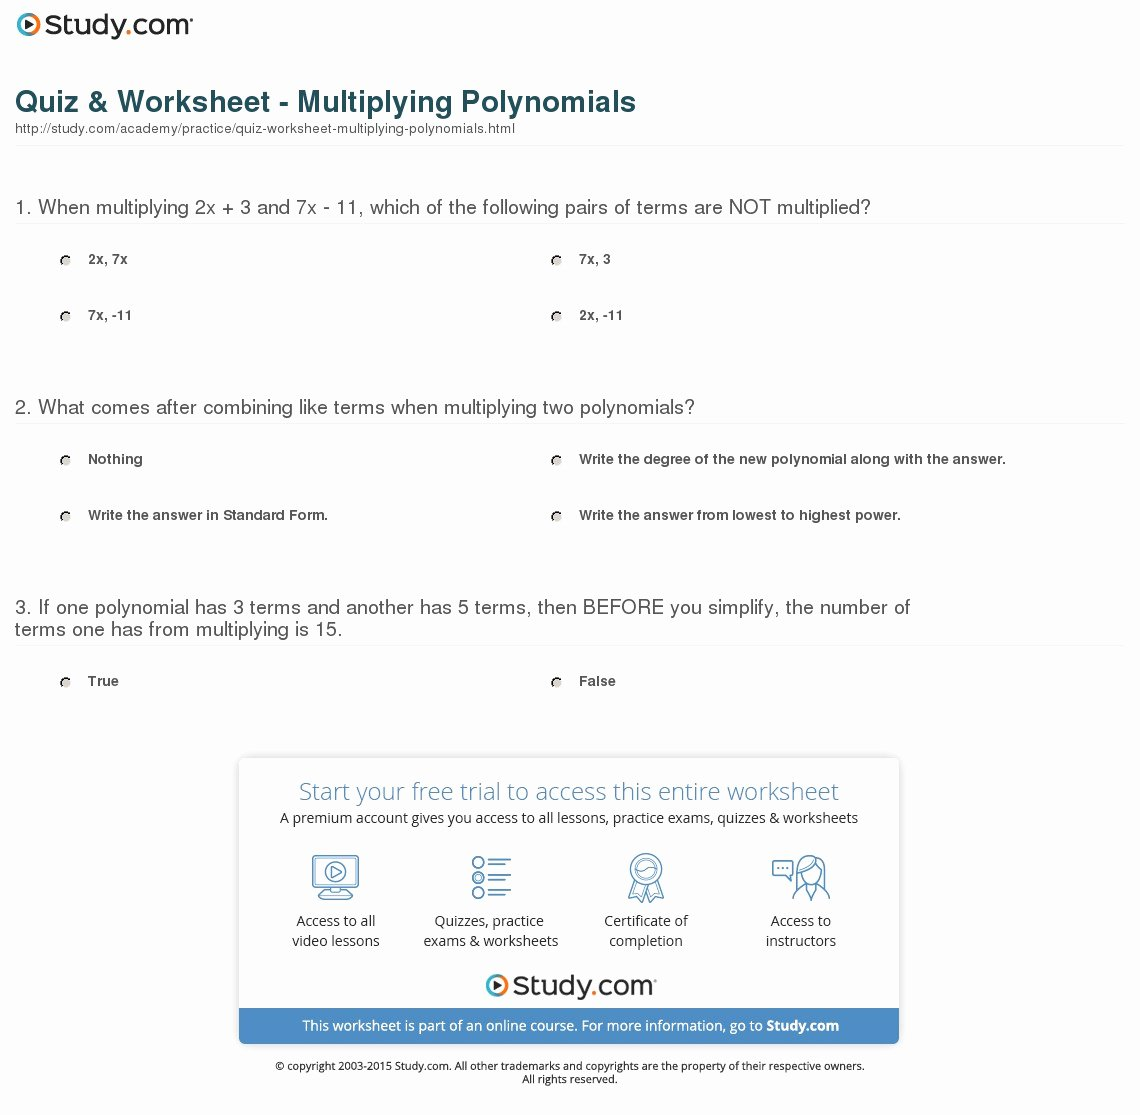 Multiplying Polynomials Worksheet Answers New Quiz & Worksheet Multiplying Polynomials